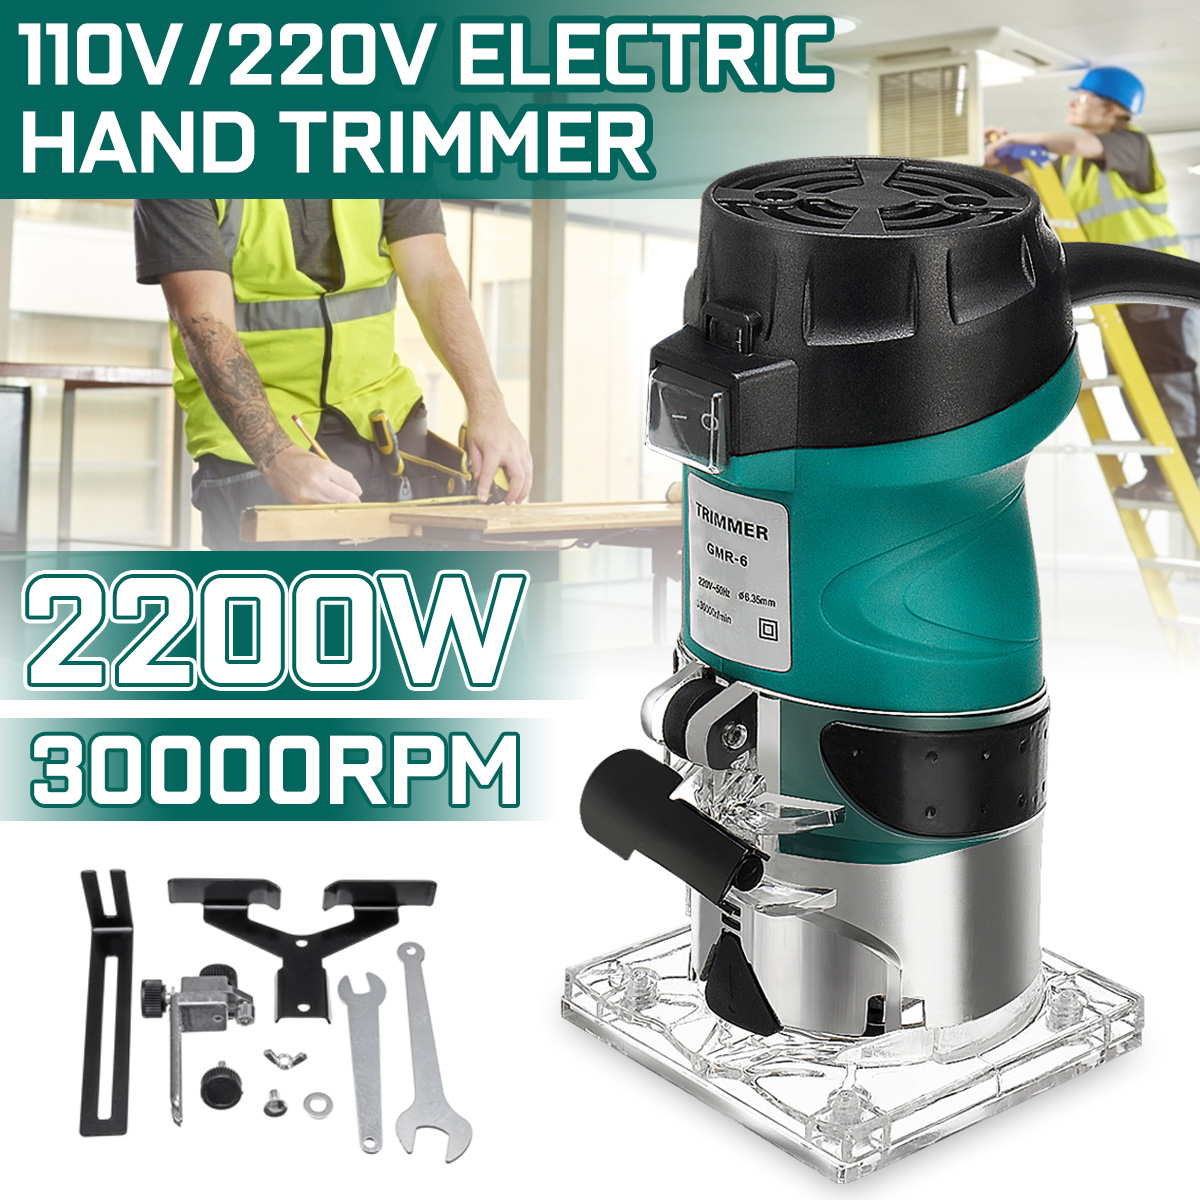 220V 2200W Woodworking Electric Trimmer Wood Milling Engraving Slotting Trimming Machine Hand Carving Machine Wood Router